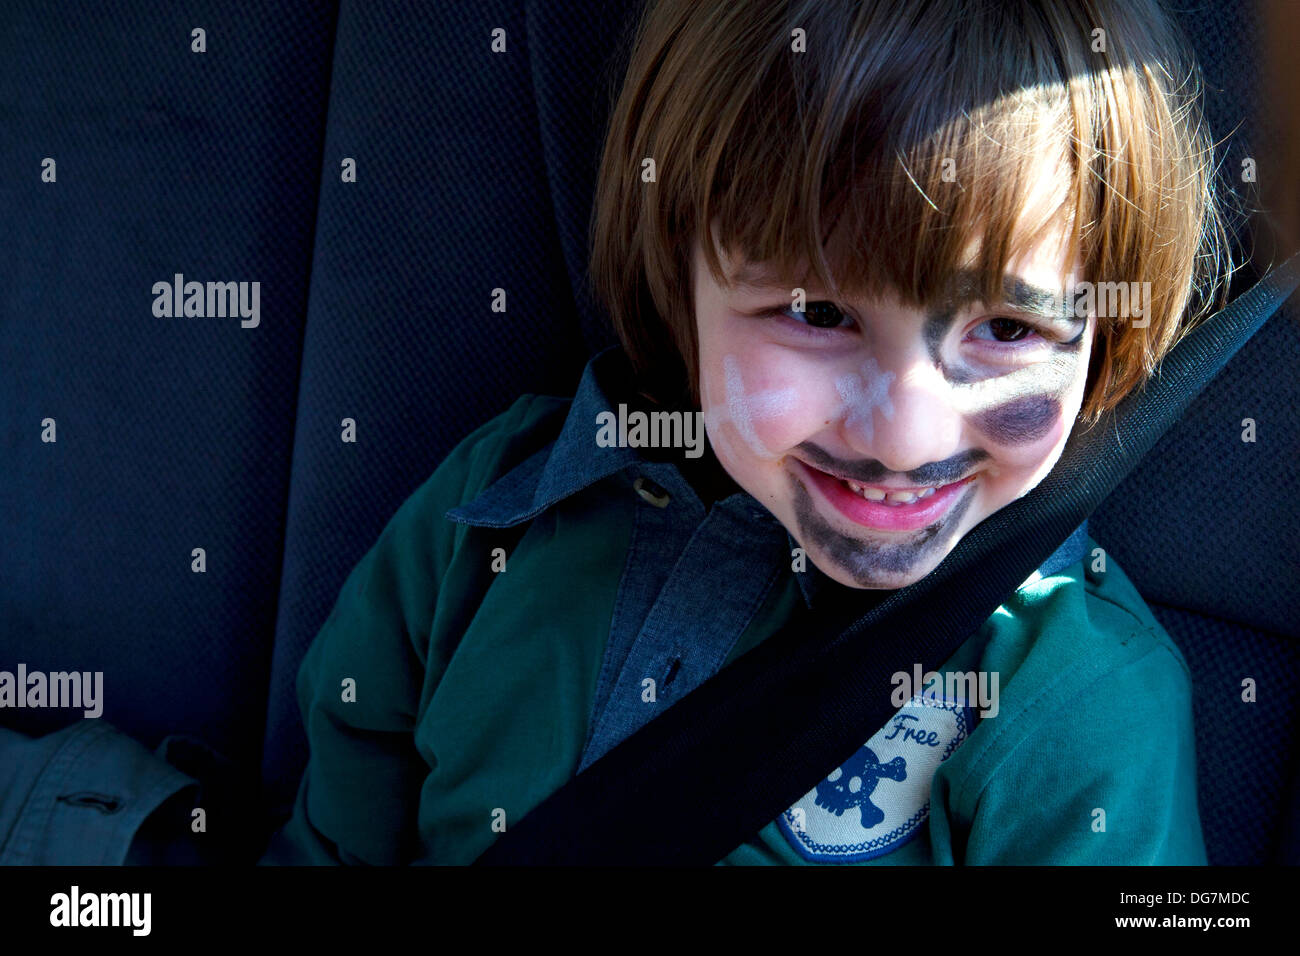 Four and a half year old boy sat in back of car with safety belt on. - Stock Image